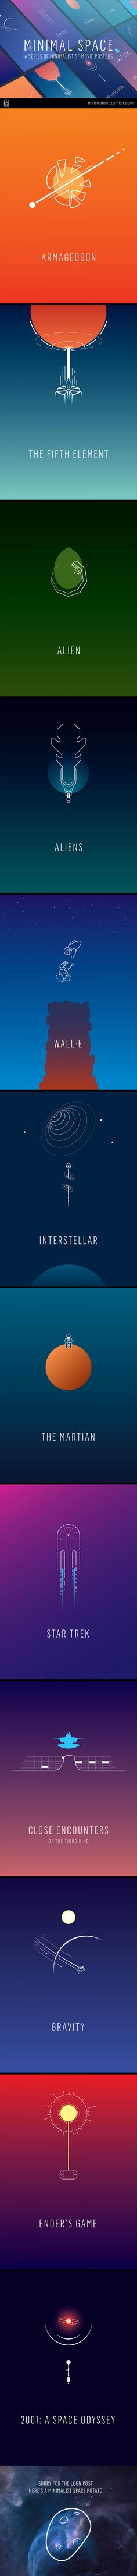 Minimal Space - minimalist posters for SF movies